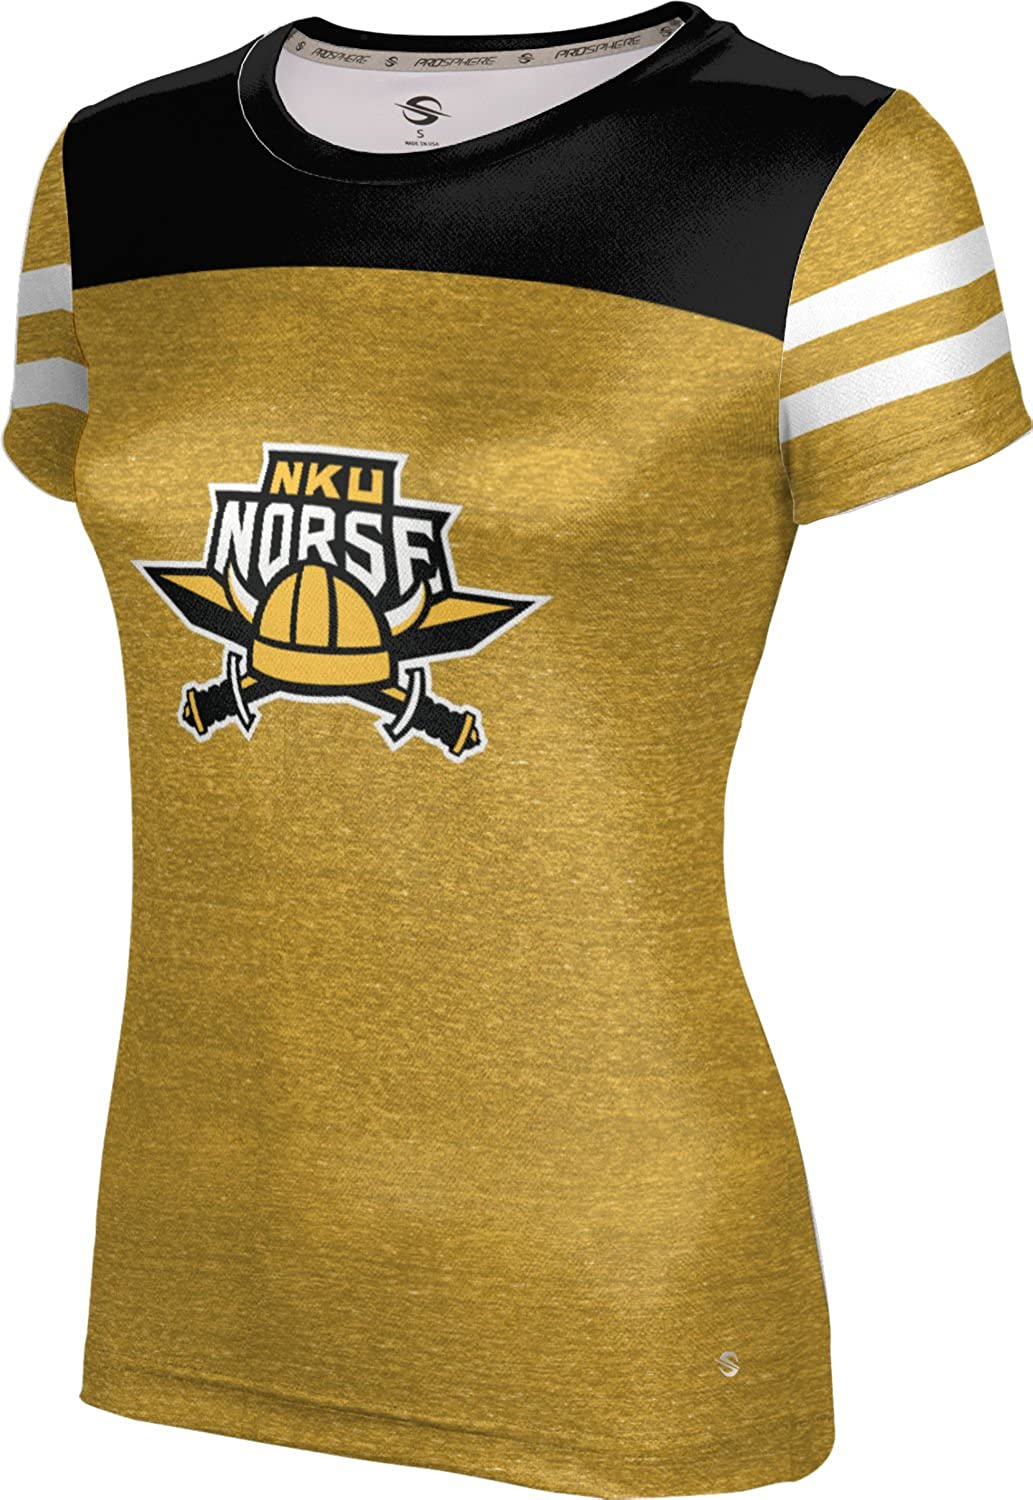 competitive price 33559 07f0d ProSphere Northern Kentucky University Women's Performance T ...